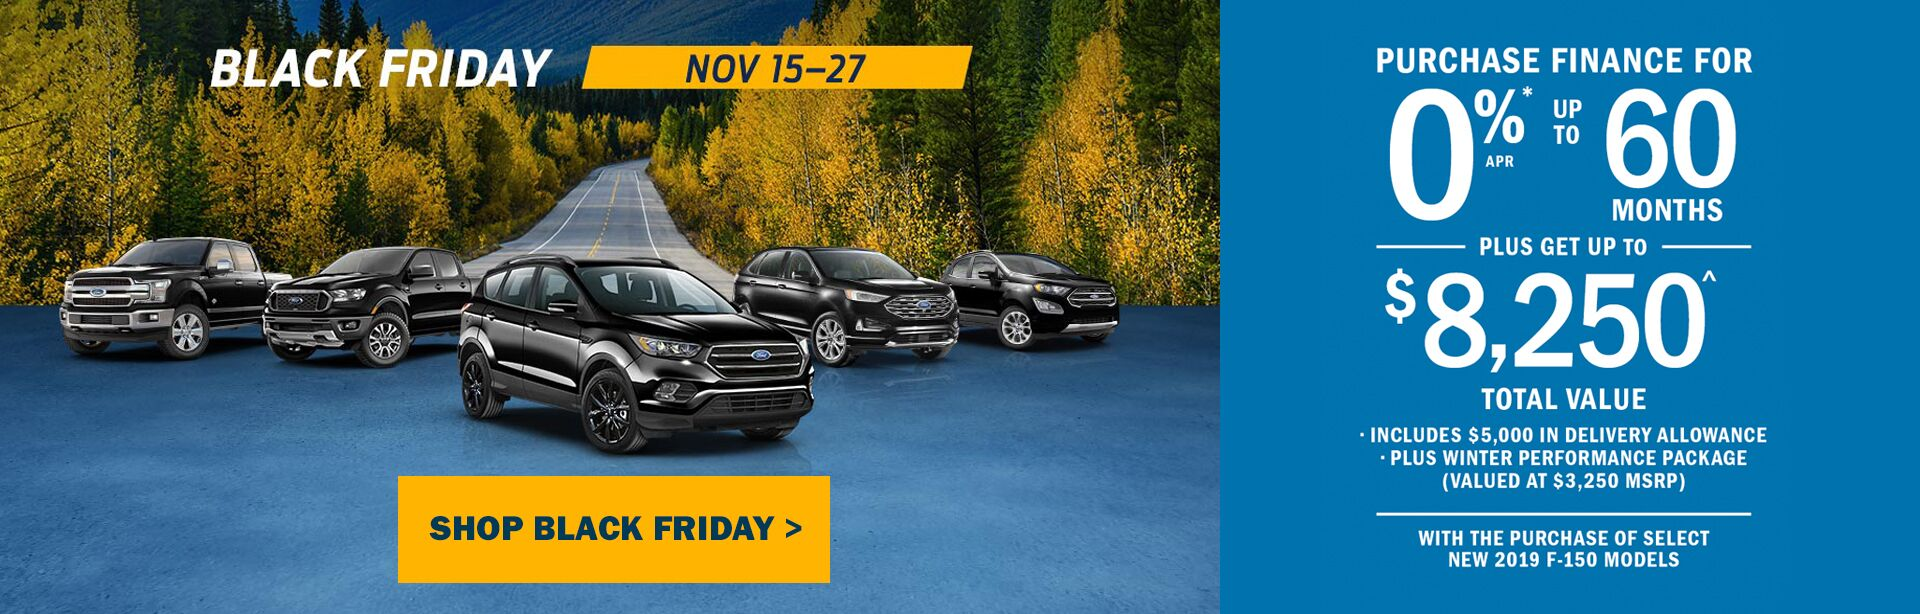 Black Friday at Marlborough Ford